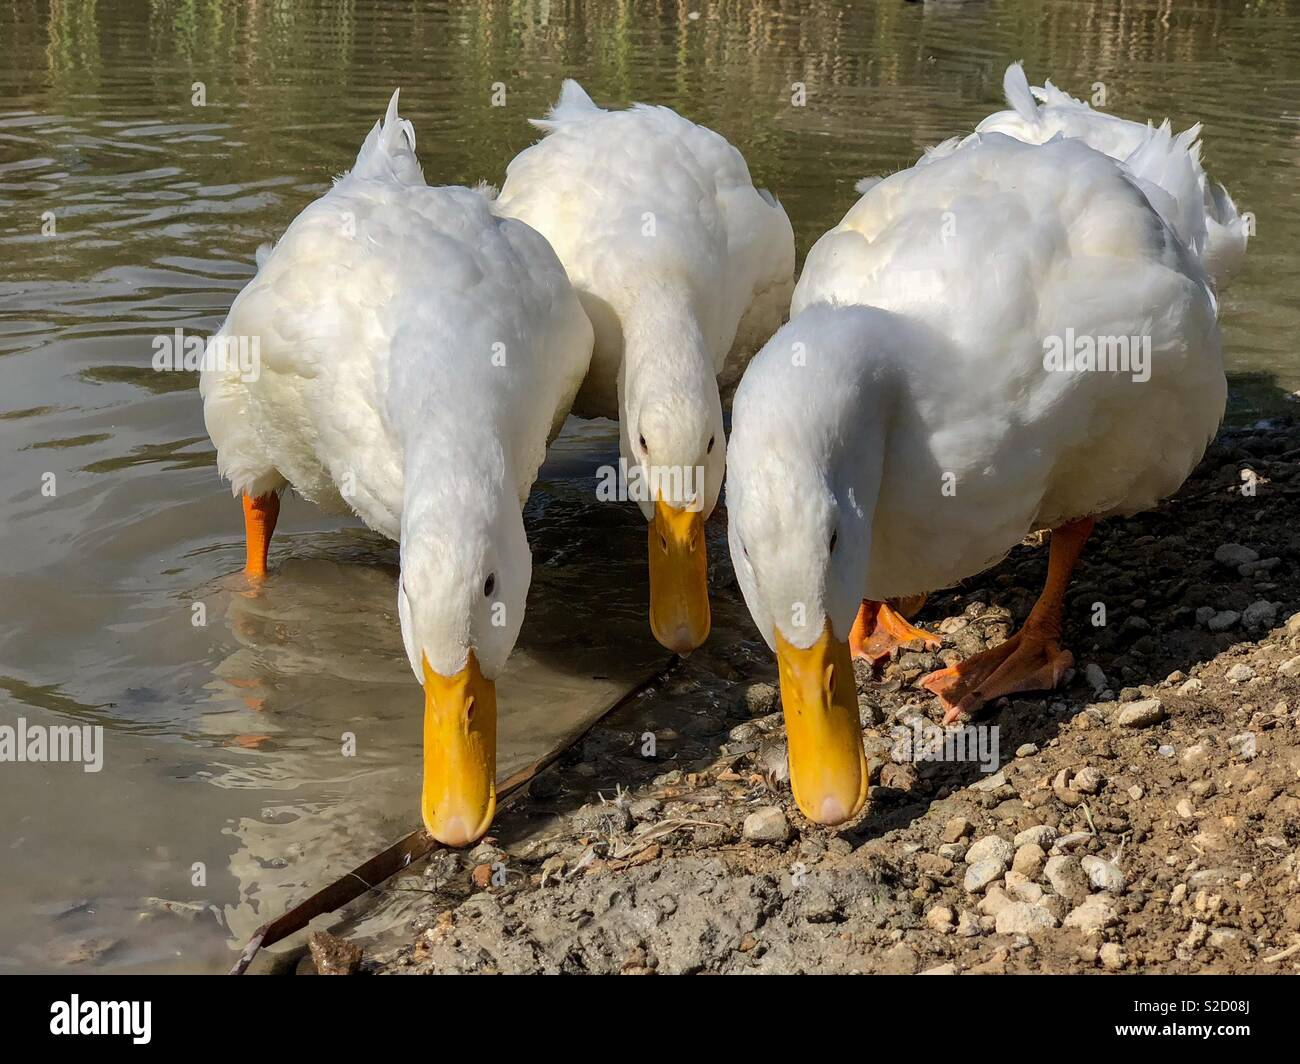 Heavy white ducks with three beams together search for food - Stock Image